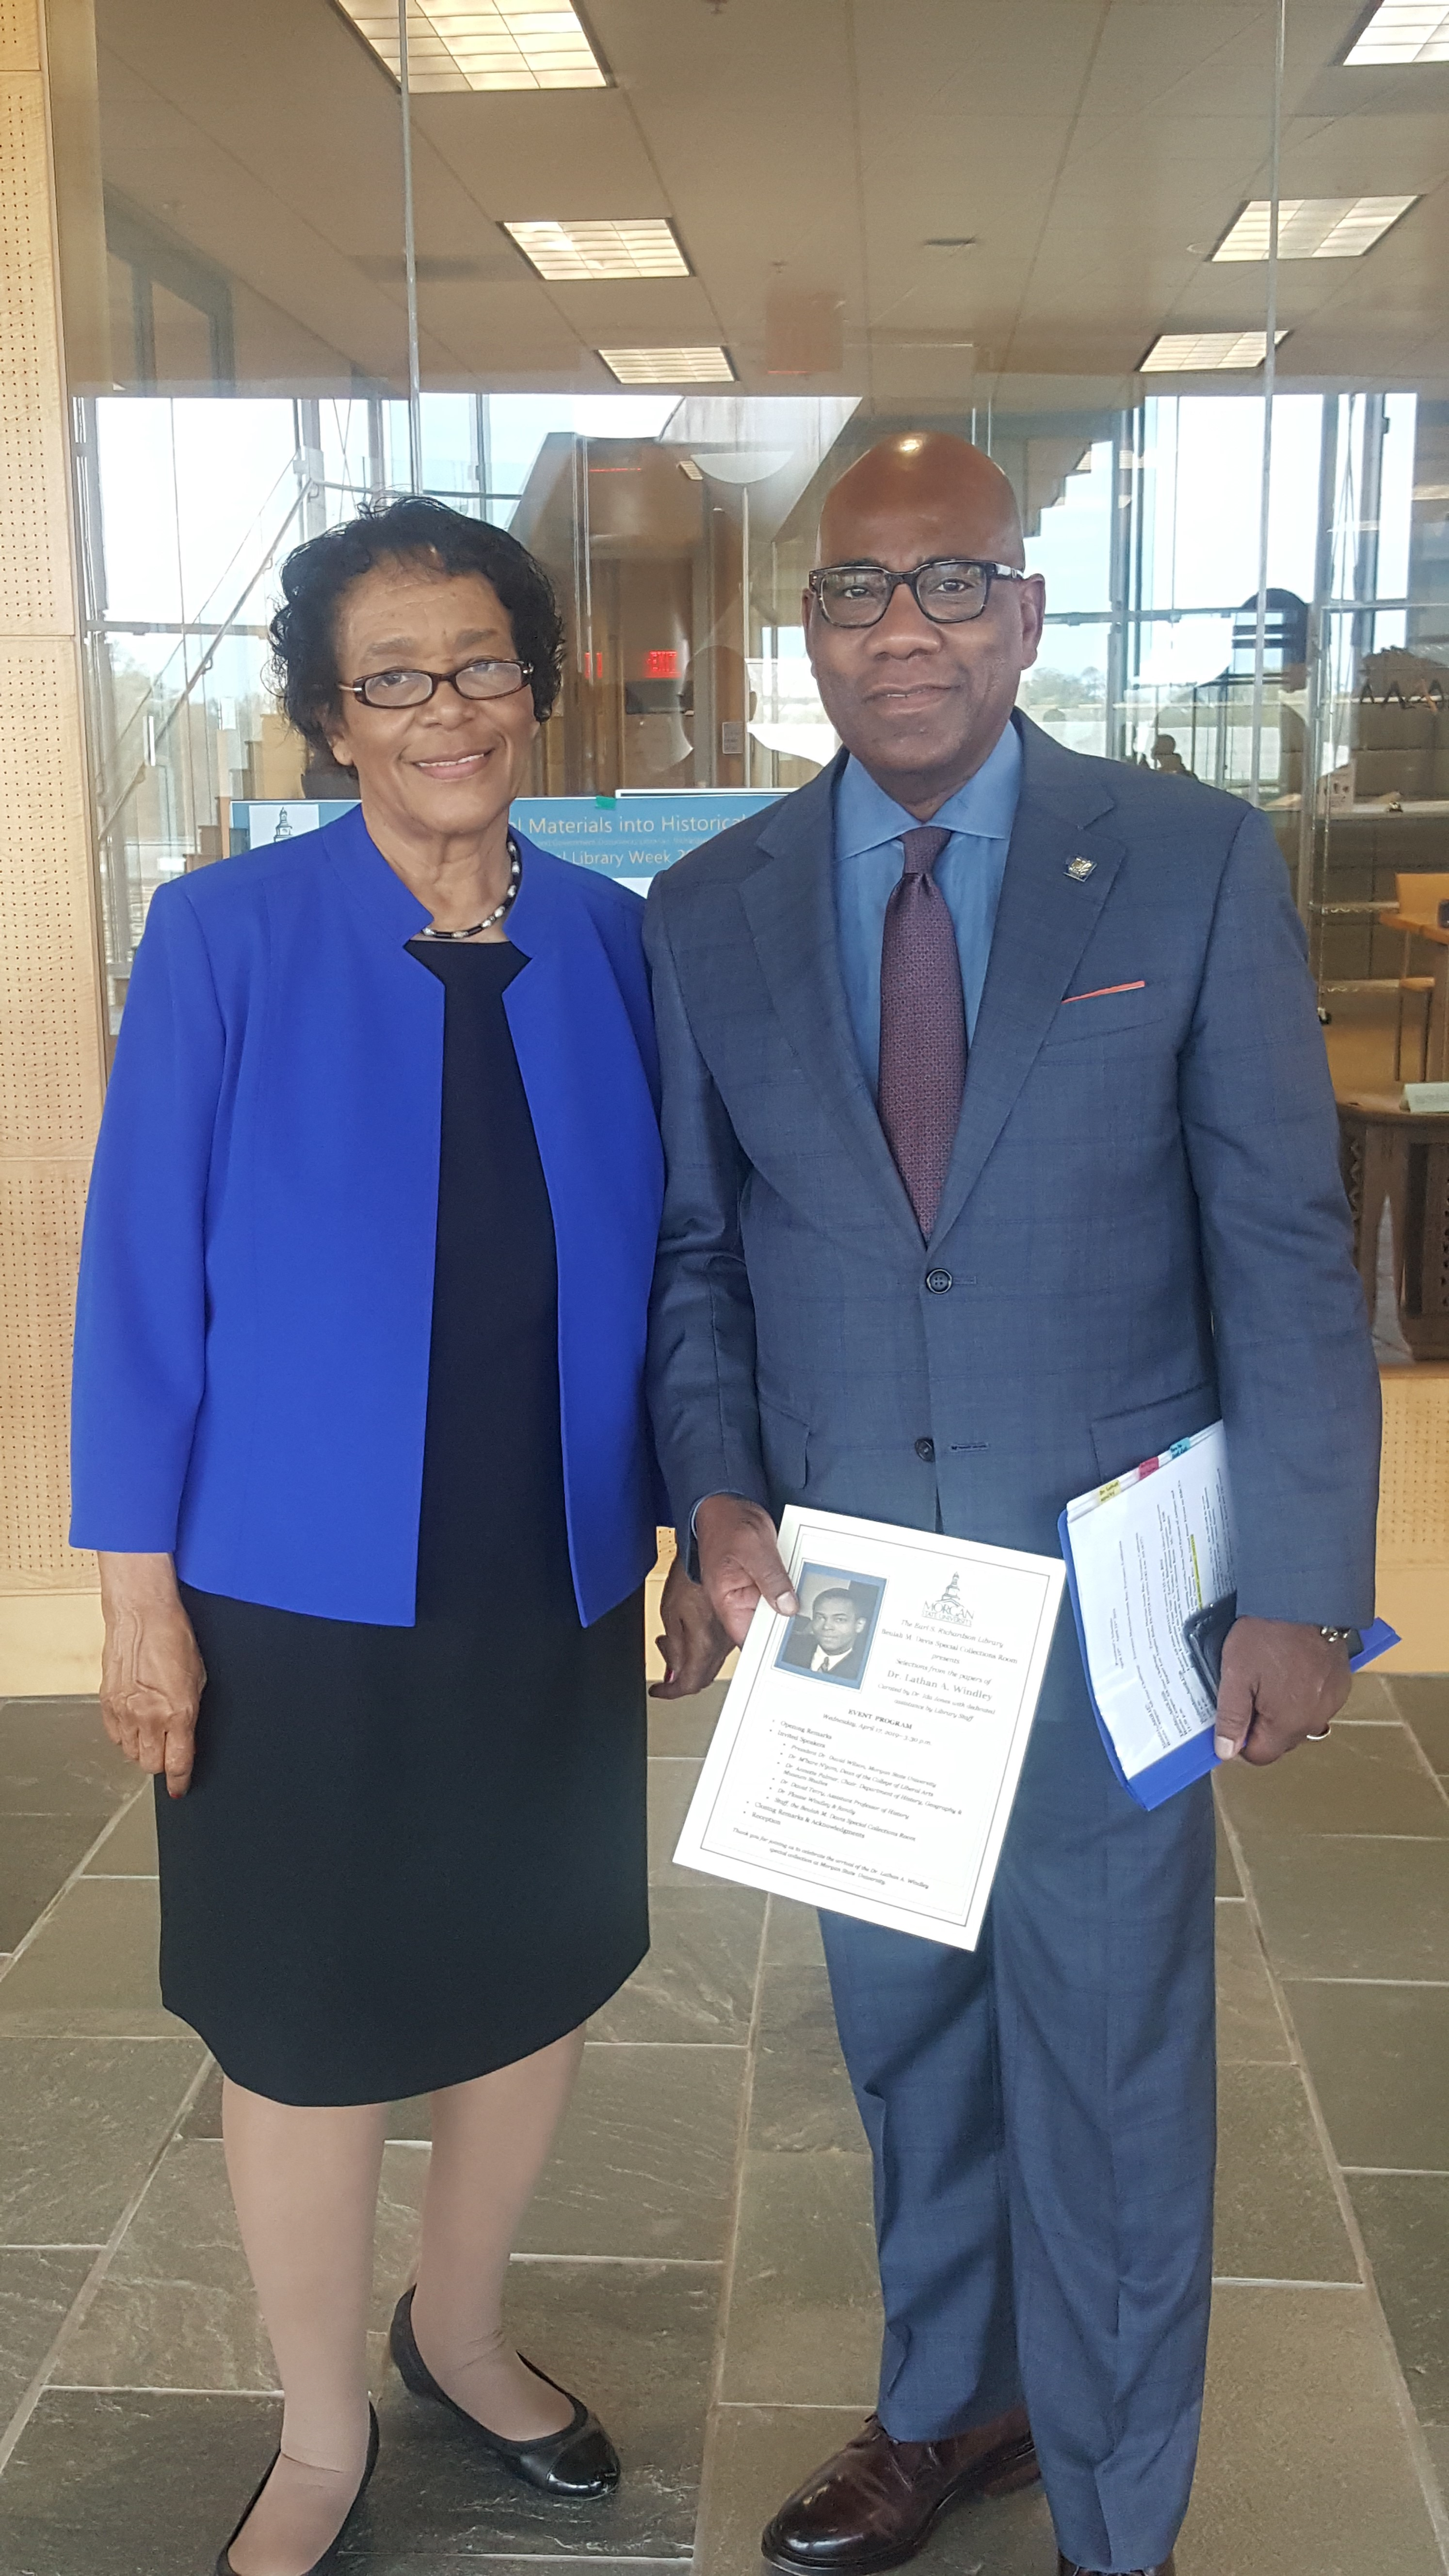 Dr. Flossie Windley and Dr. David Wilson